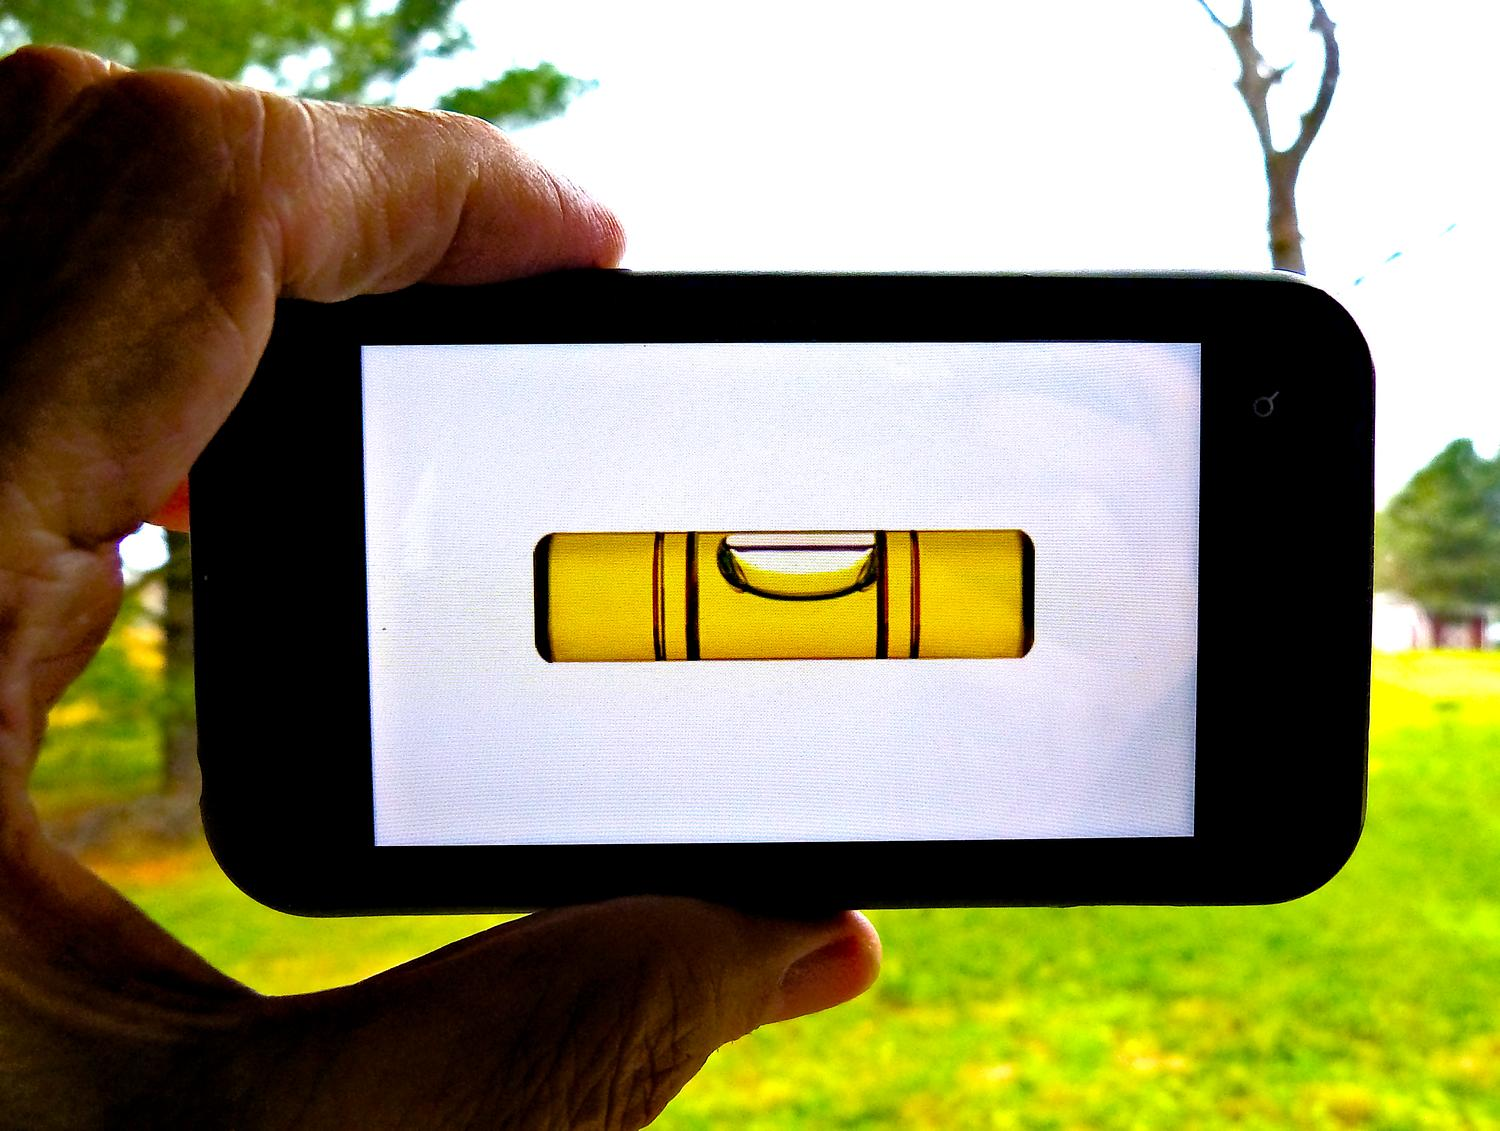 - Here's a smartphone app that puts a bubble level on its screen. I want this in my camera! - Tony Karp, design, art, photography, techno-impressionist, techno-impressionism, aerial photography , drone , drones , dji , mavic pro , video , 3D printing - Books -